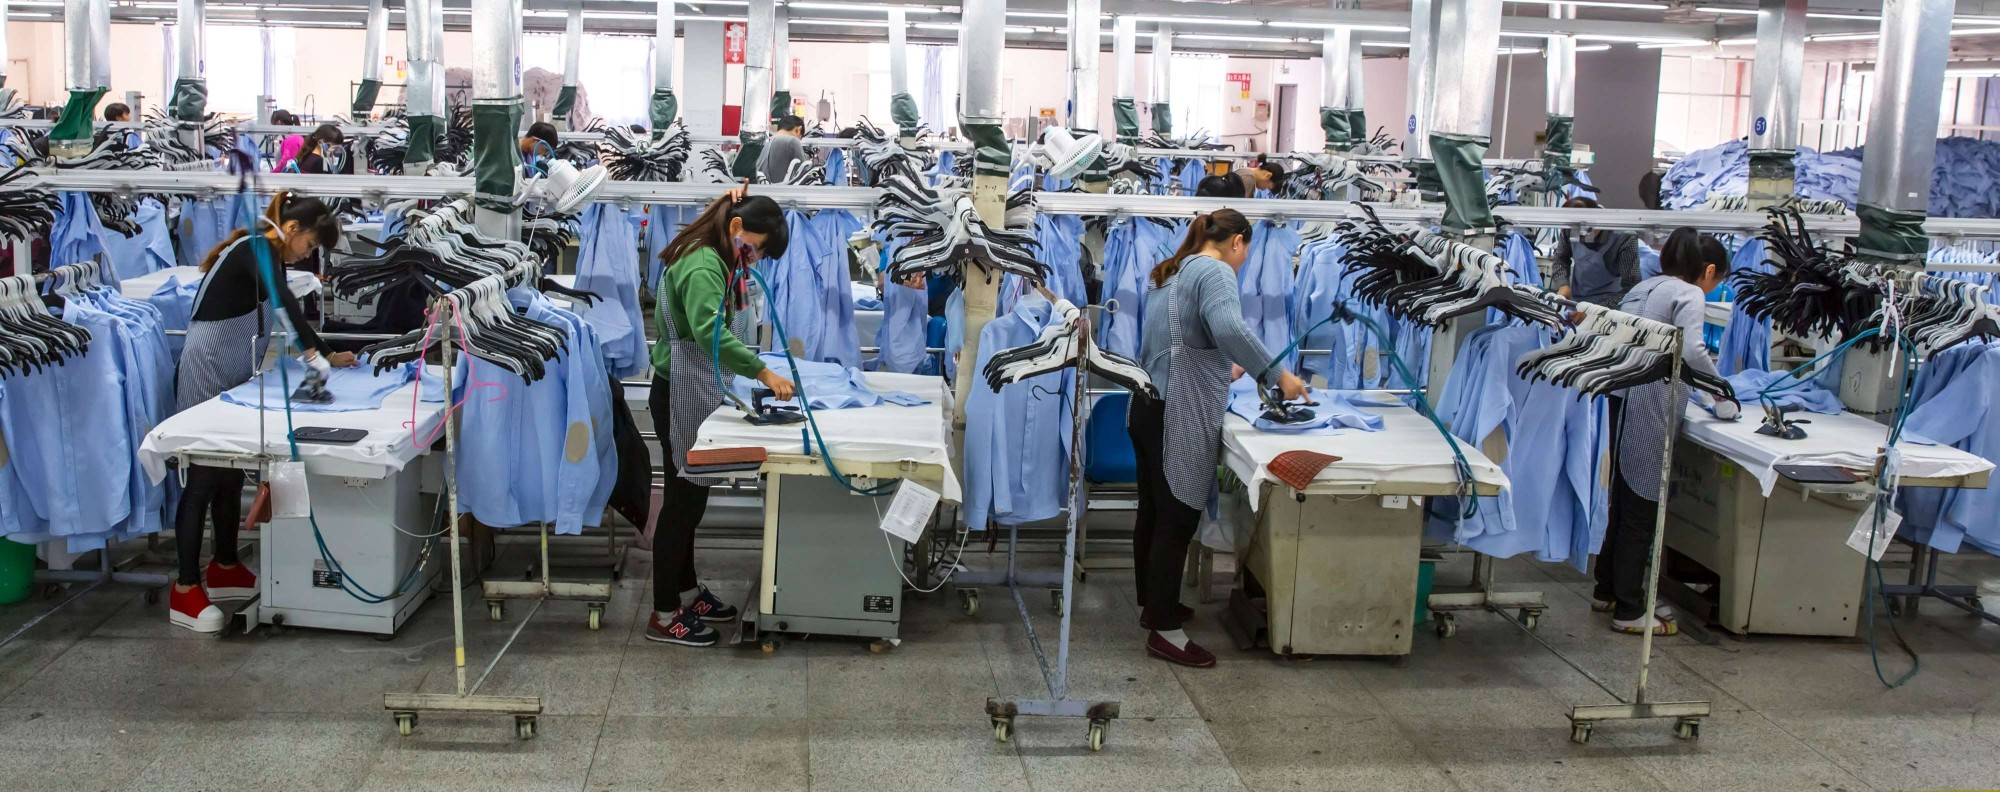 Women work in a shirt factory in China. Photo: AFP